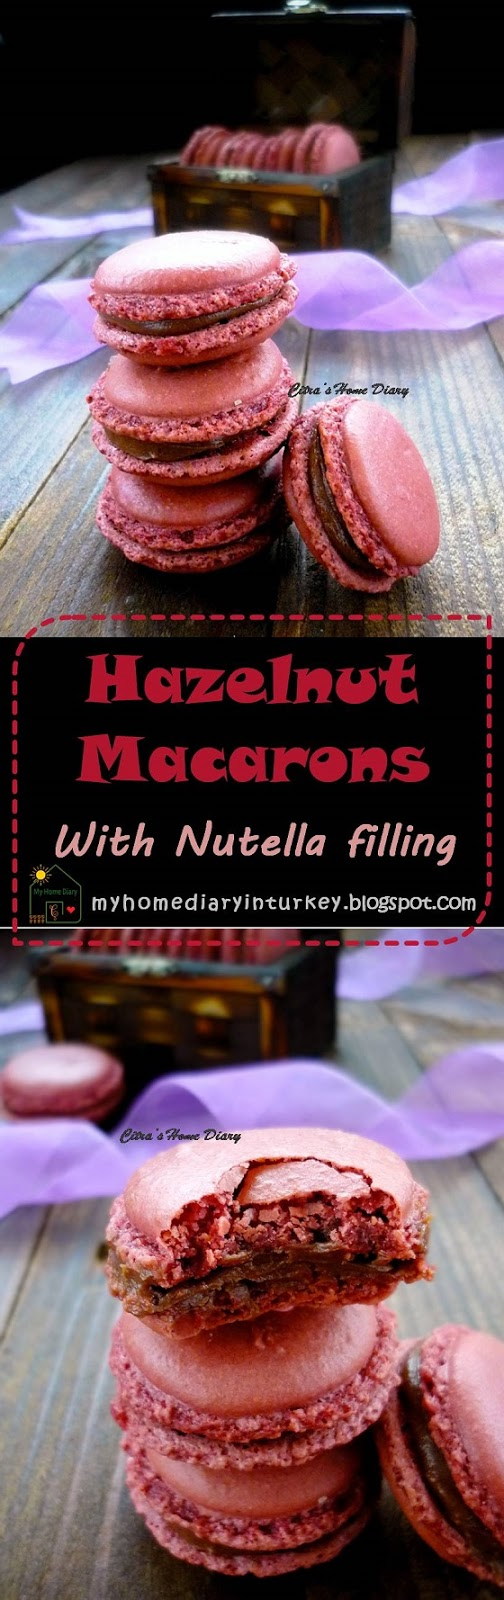 Citra's Home Diary: Hazelnut Macarons With Nutella Filling